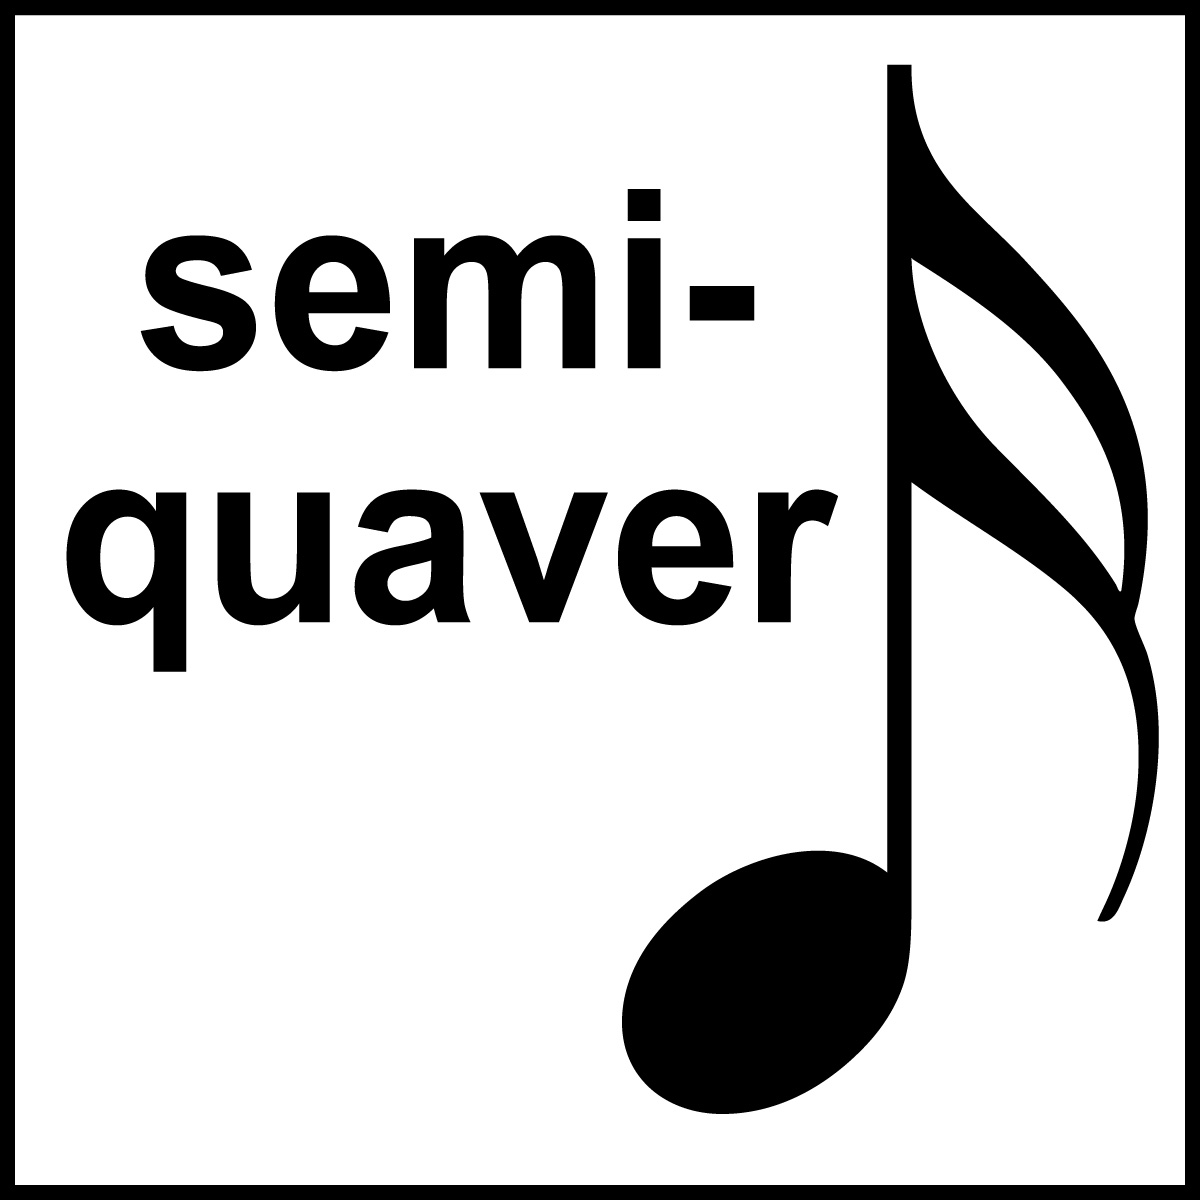 Clip Art: British Music Notation: Semiquaver B&W Labeled.